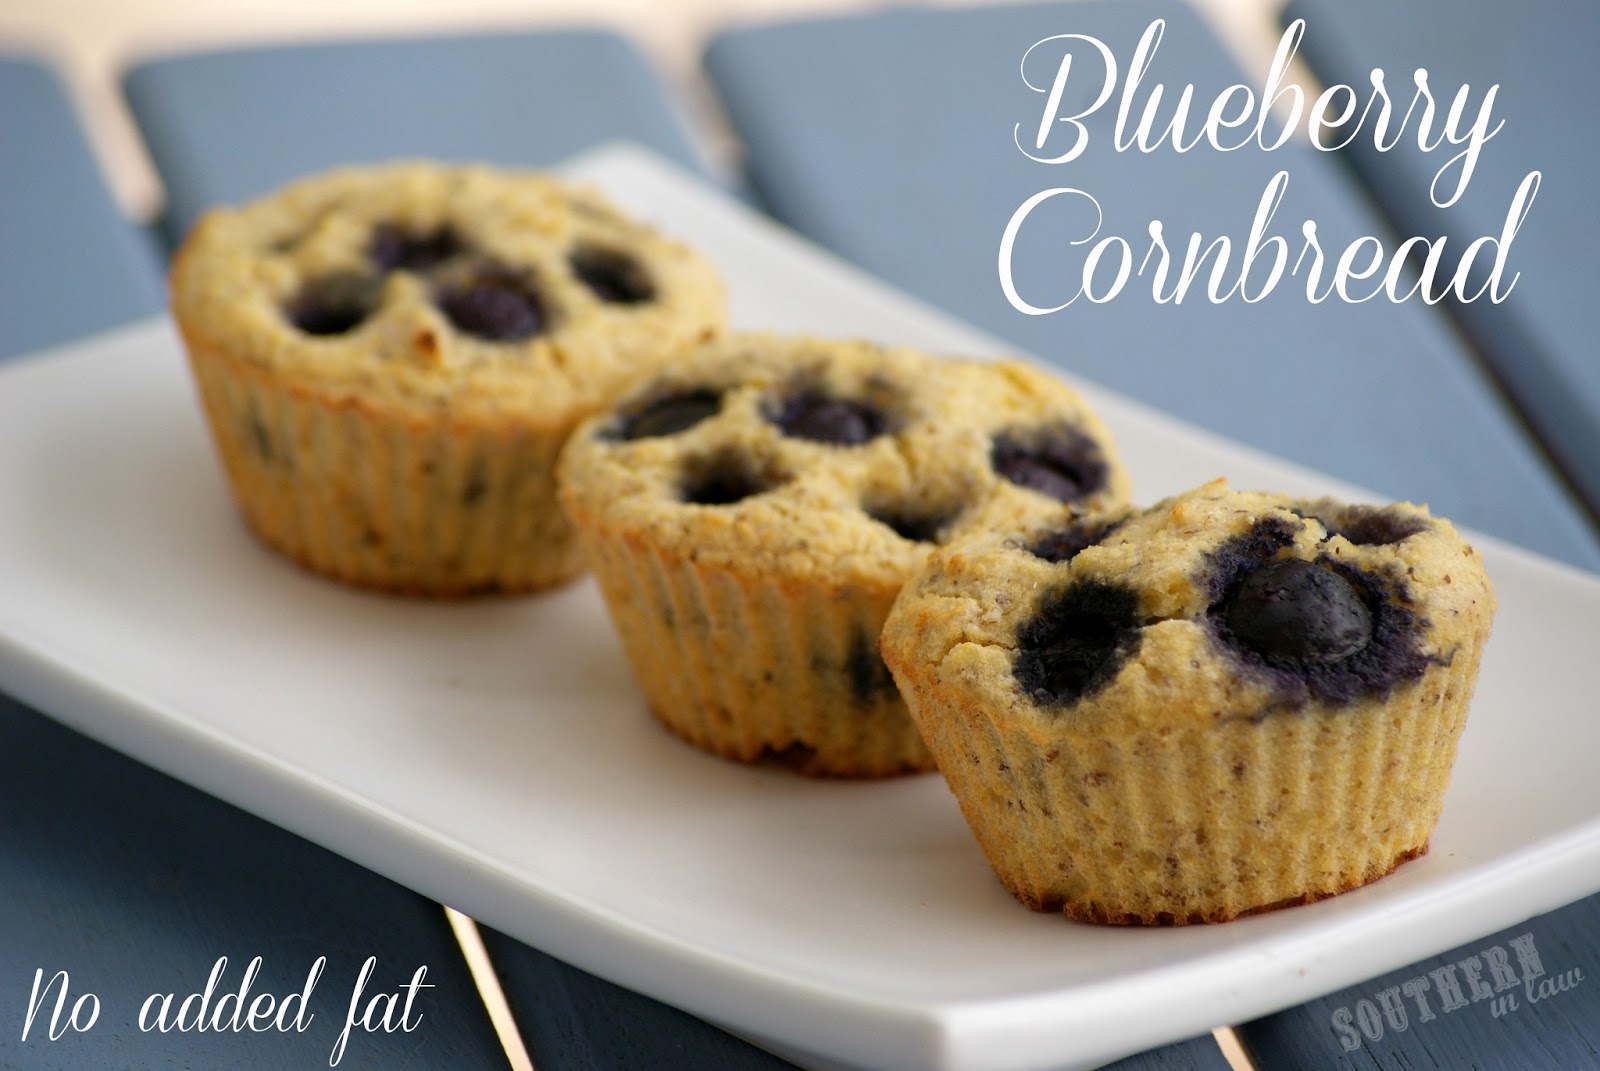 Healthy Sweet Cornbread Recipe with Blueberries - Gluten Free, Low Fat ...